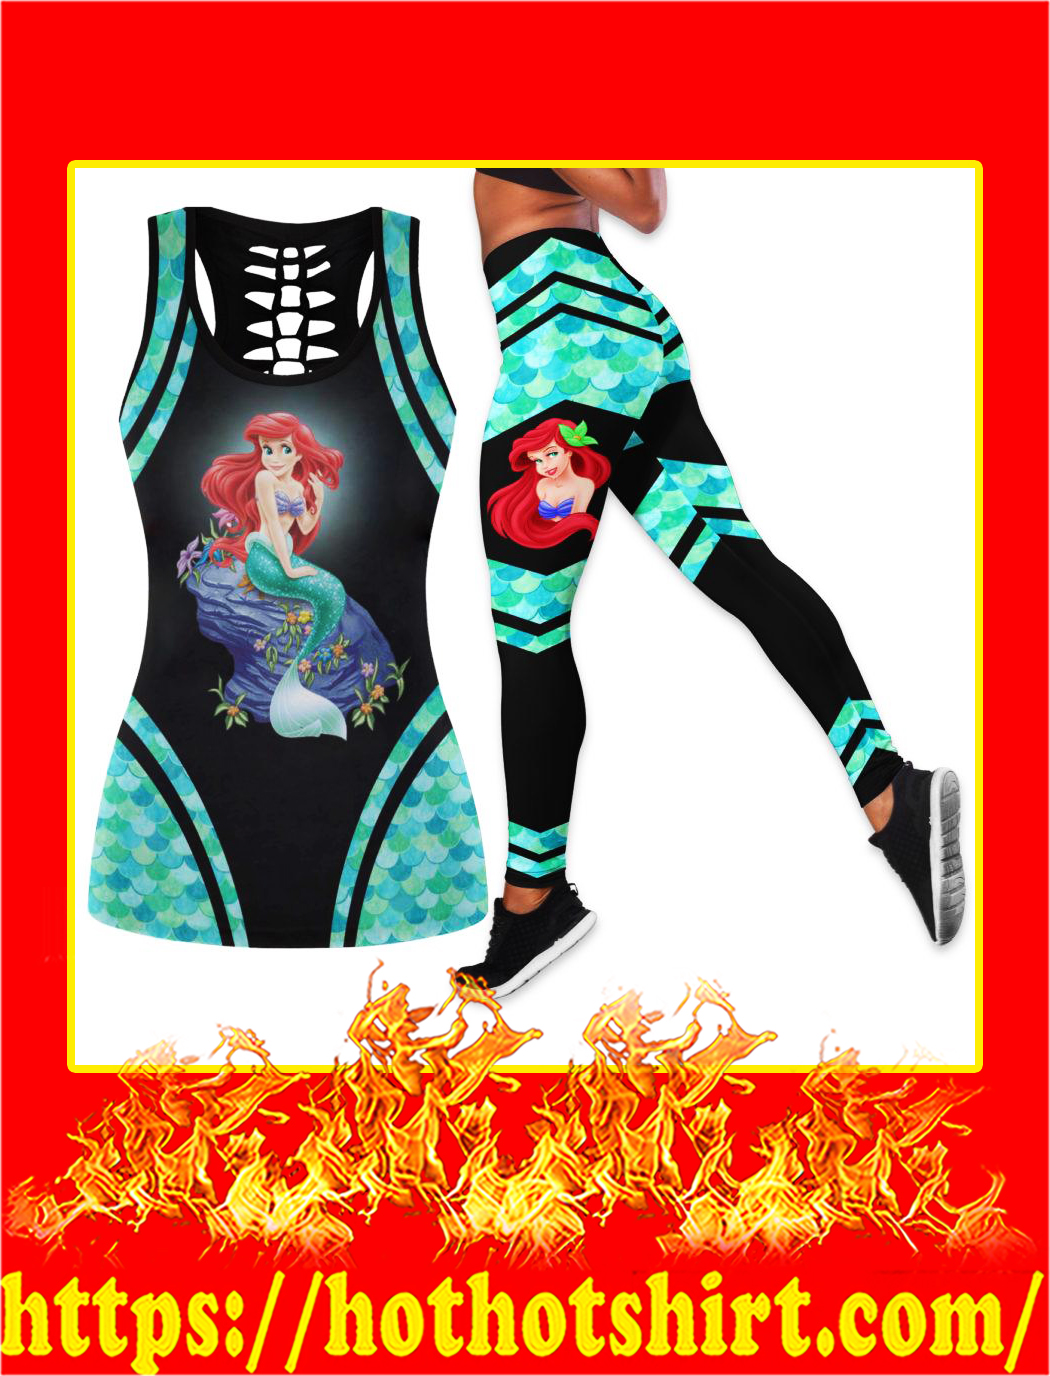 Ariel the little mermaid hollow tank top